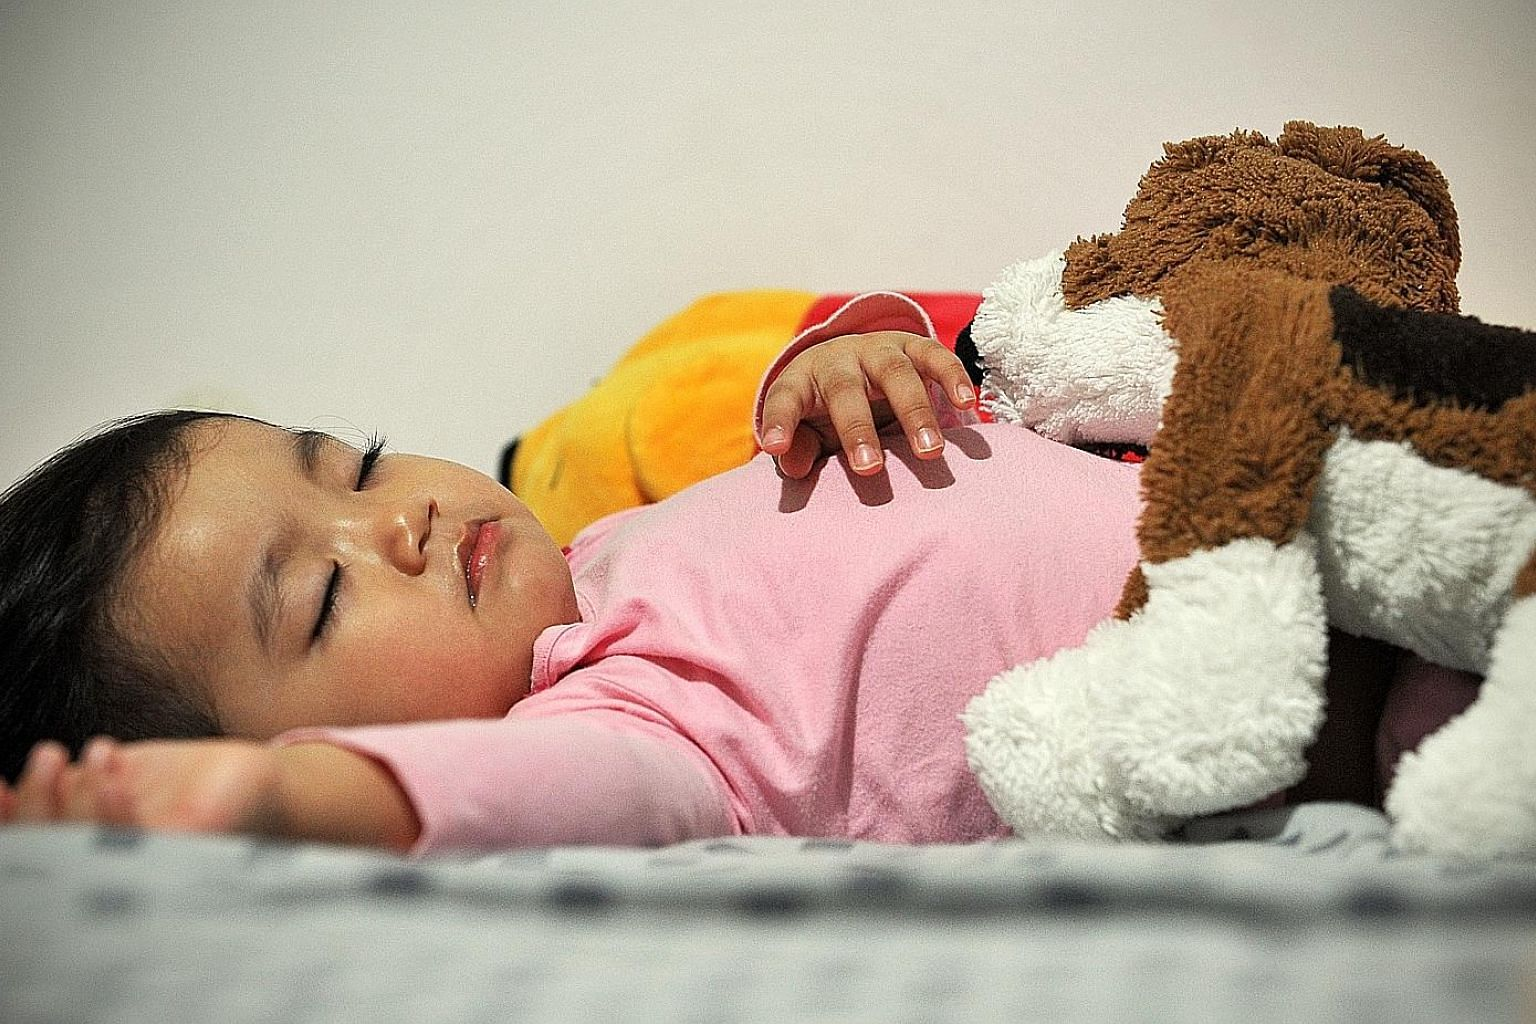 Bedtime cues can create a ritual that helps babies feel more secure and fall asleep, but do not let routines become fixations.